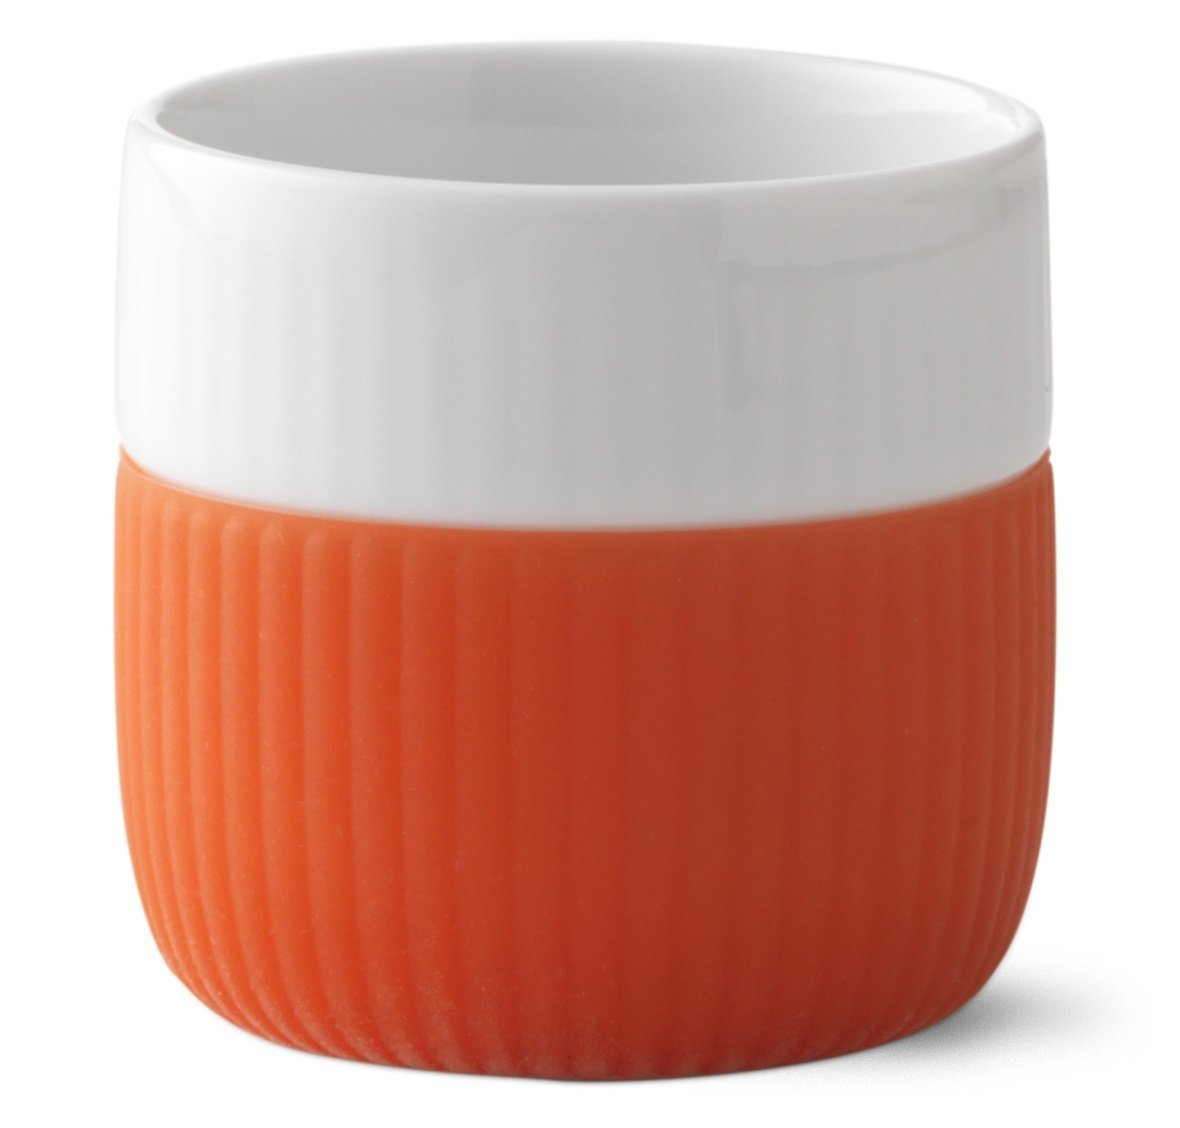 Poppy Red Royal Copenhagen Fluted Contrast Espresso Cup 8cl